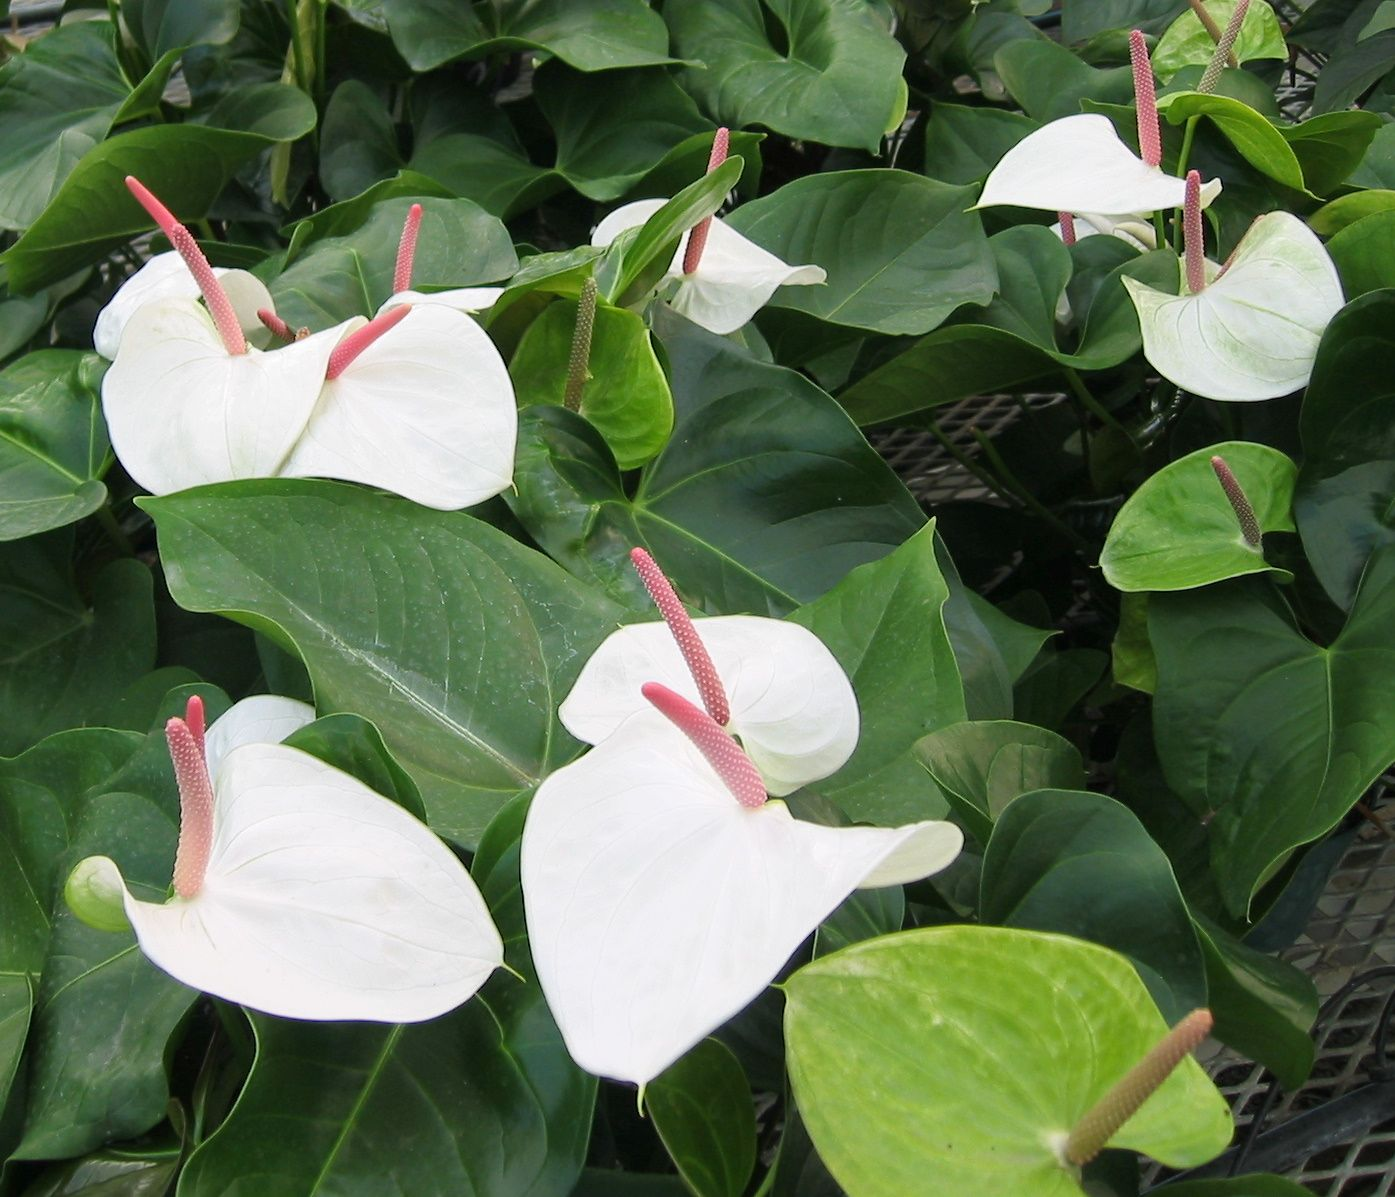 Anthurium White Heart Was Voted The Favorite New Flowering Plant At The 2005 Tpie Trade Show White Heart Is A Break Anthurium Plants Planting Flowers